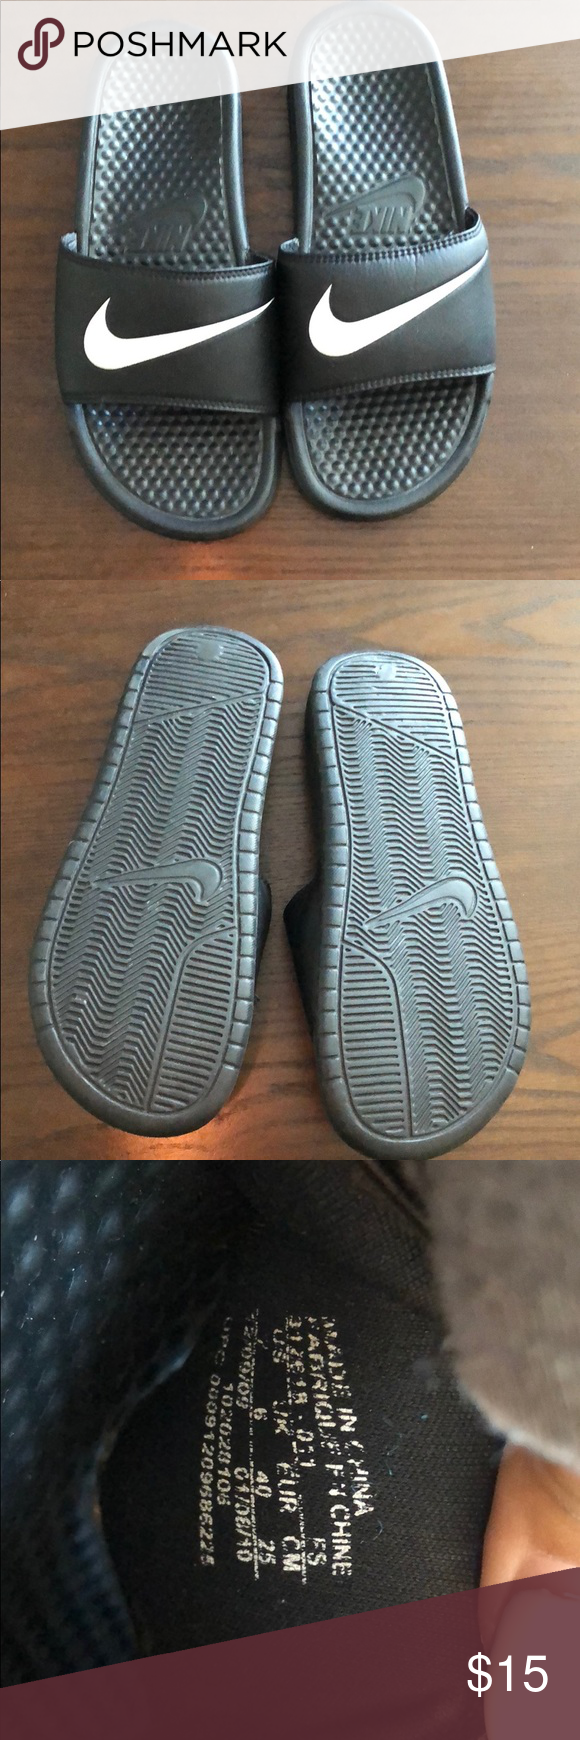 ebdb50fde062 Nike slippers Been stored away. Hardly worn Nike Shoes Slippers